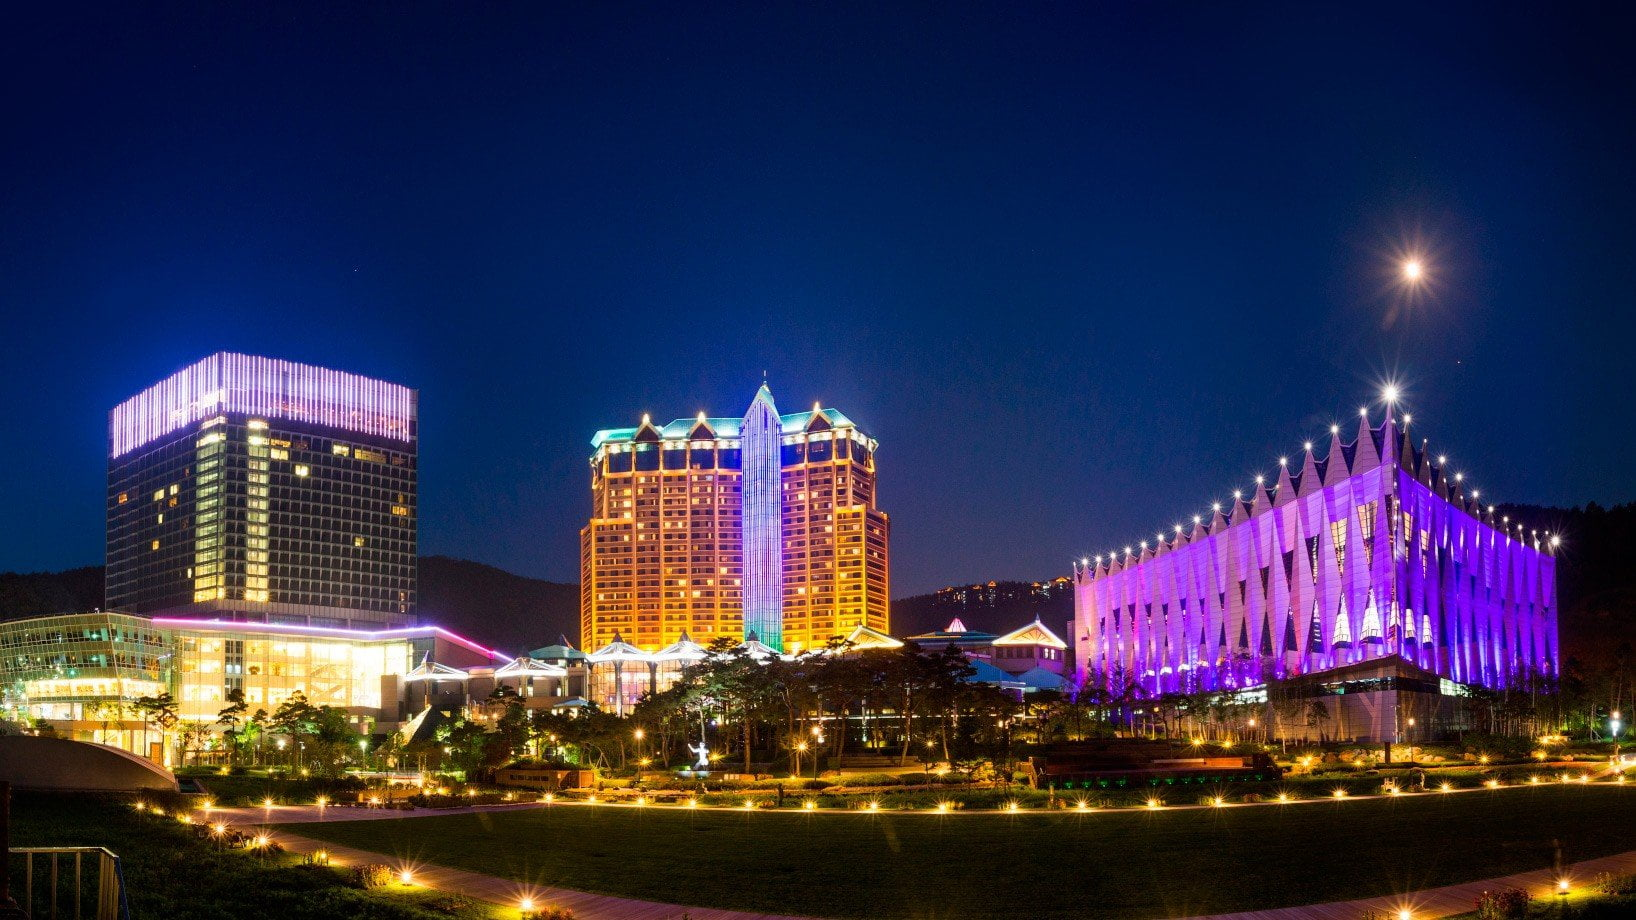 Seoul Area Casinos To Close As Directed By South Korean Officials